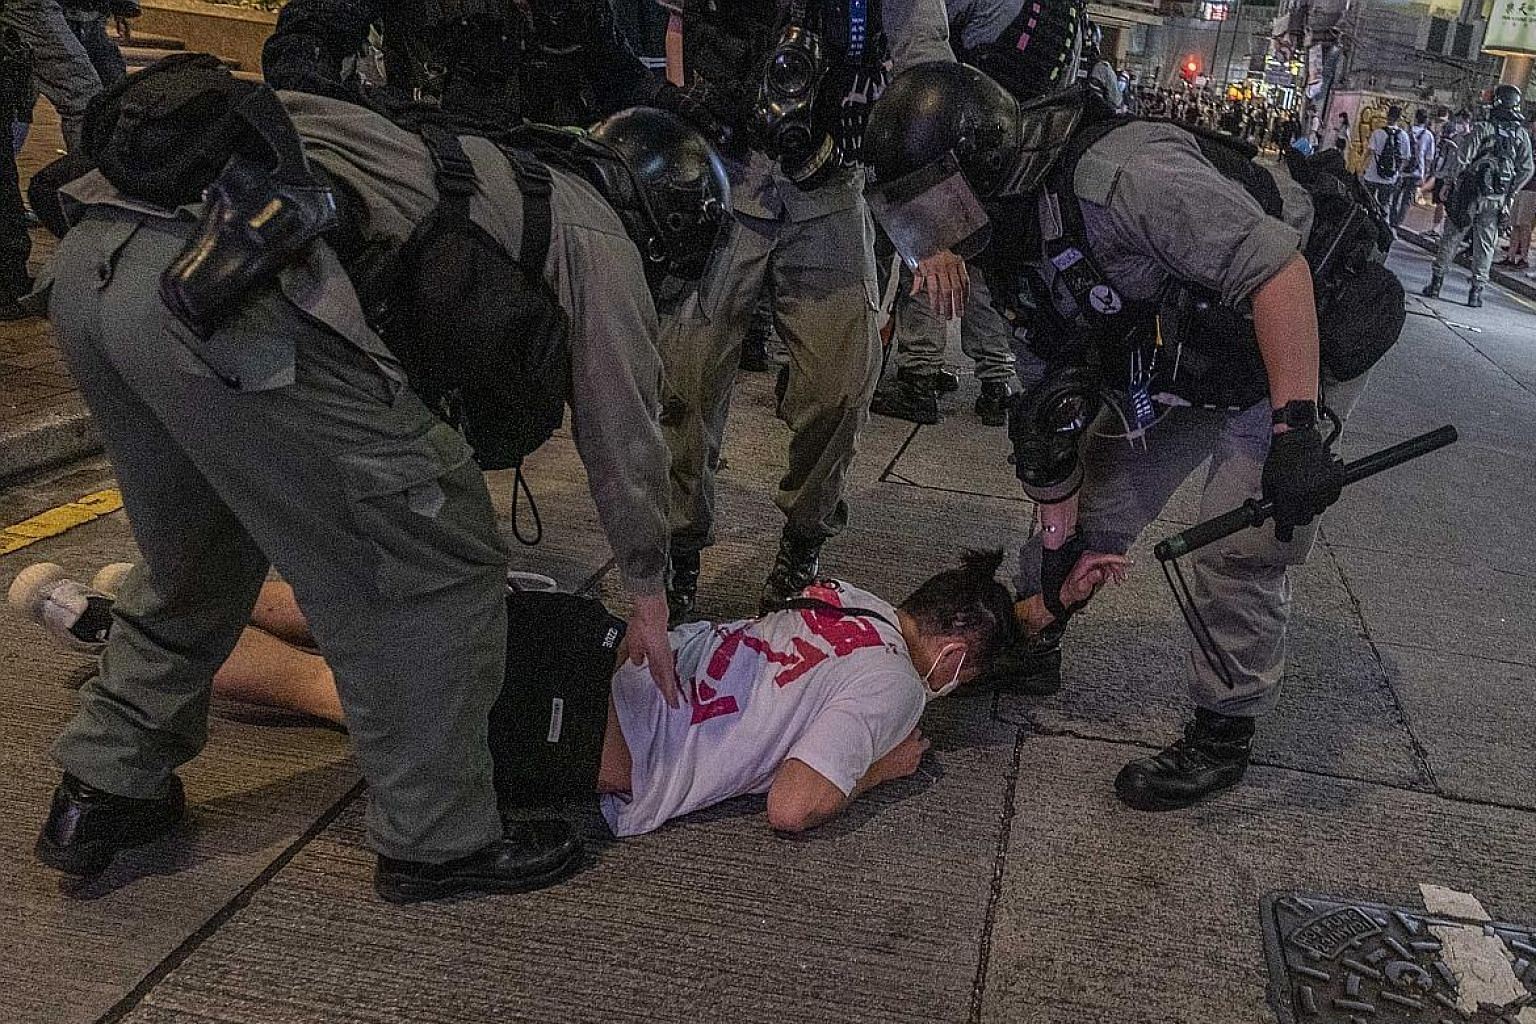 Police arresting a protester at a shopping area in the Causeway Bay area of Hong Kong last Wednesday. Hong Kong's economic environment has suffered greatly from the year-long social unrest, unstable foreign trade and the Covid-19 pandemic.